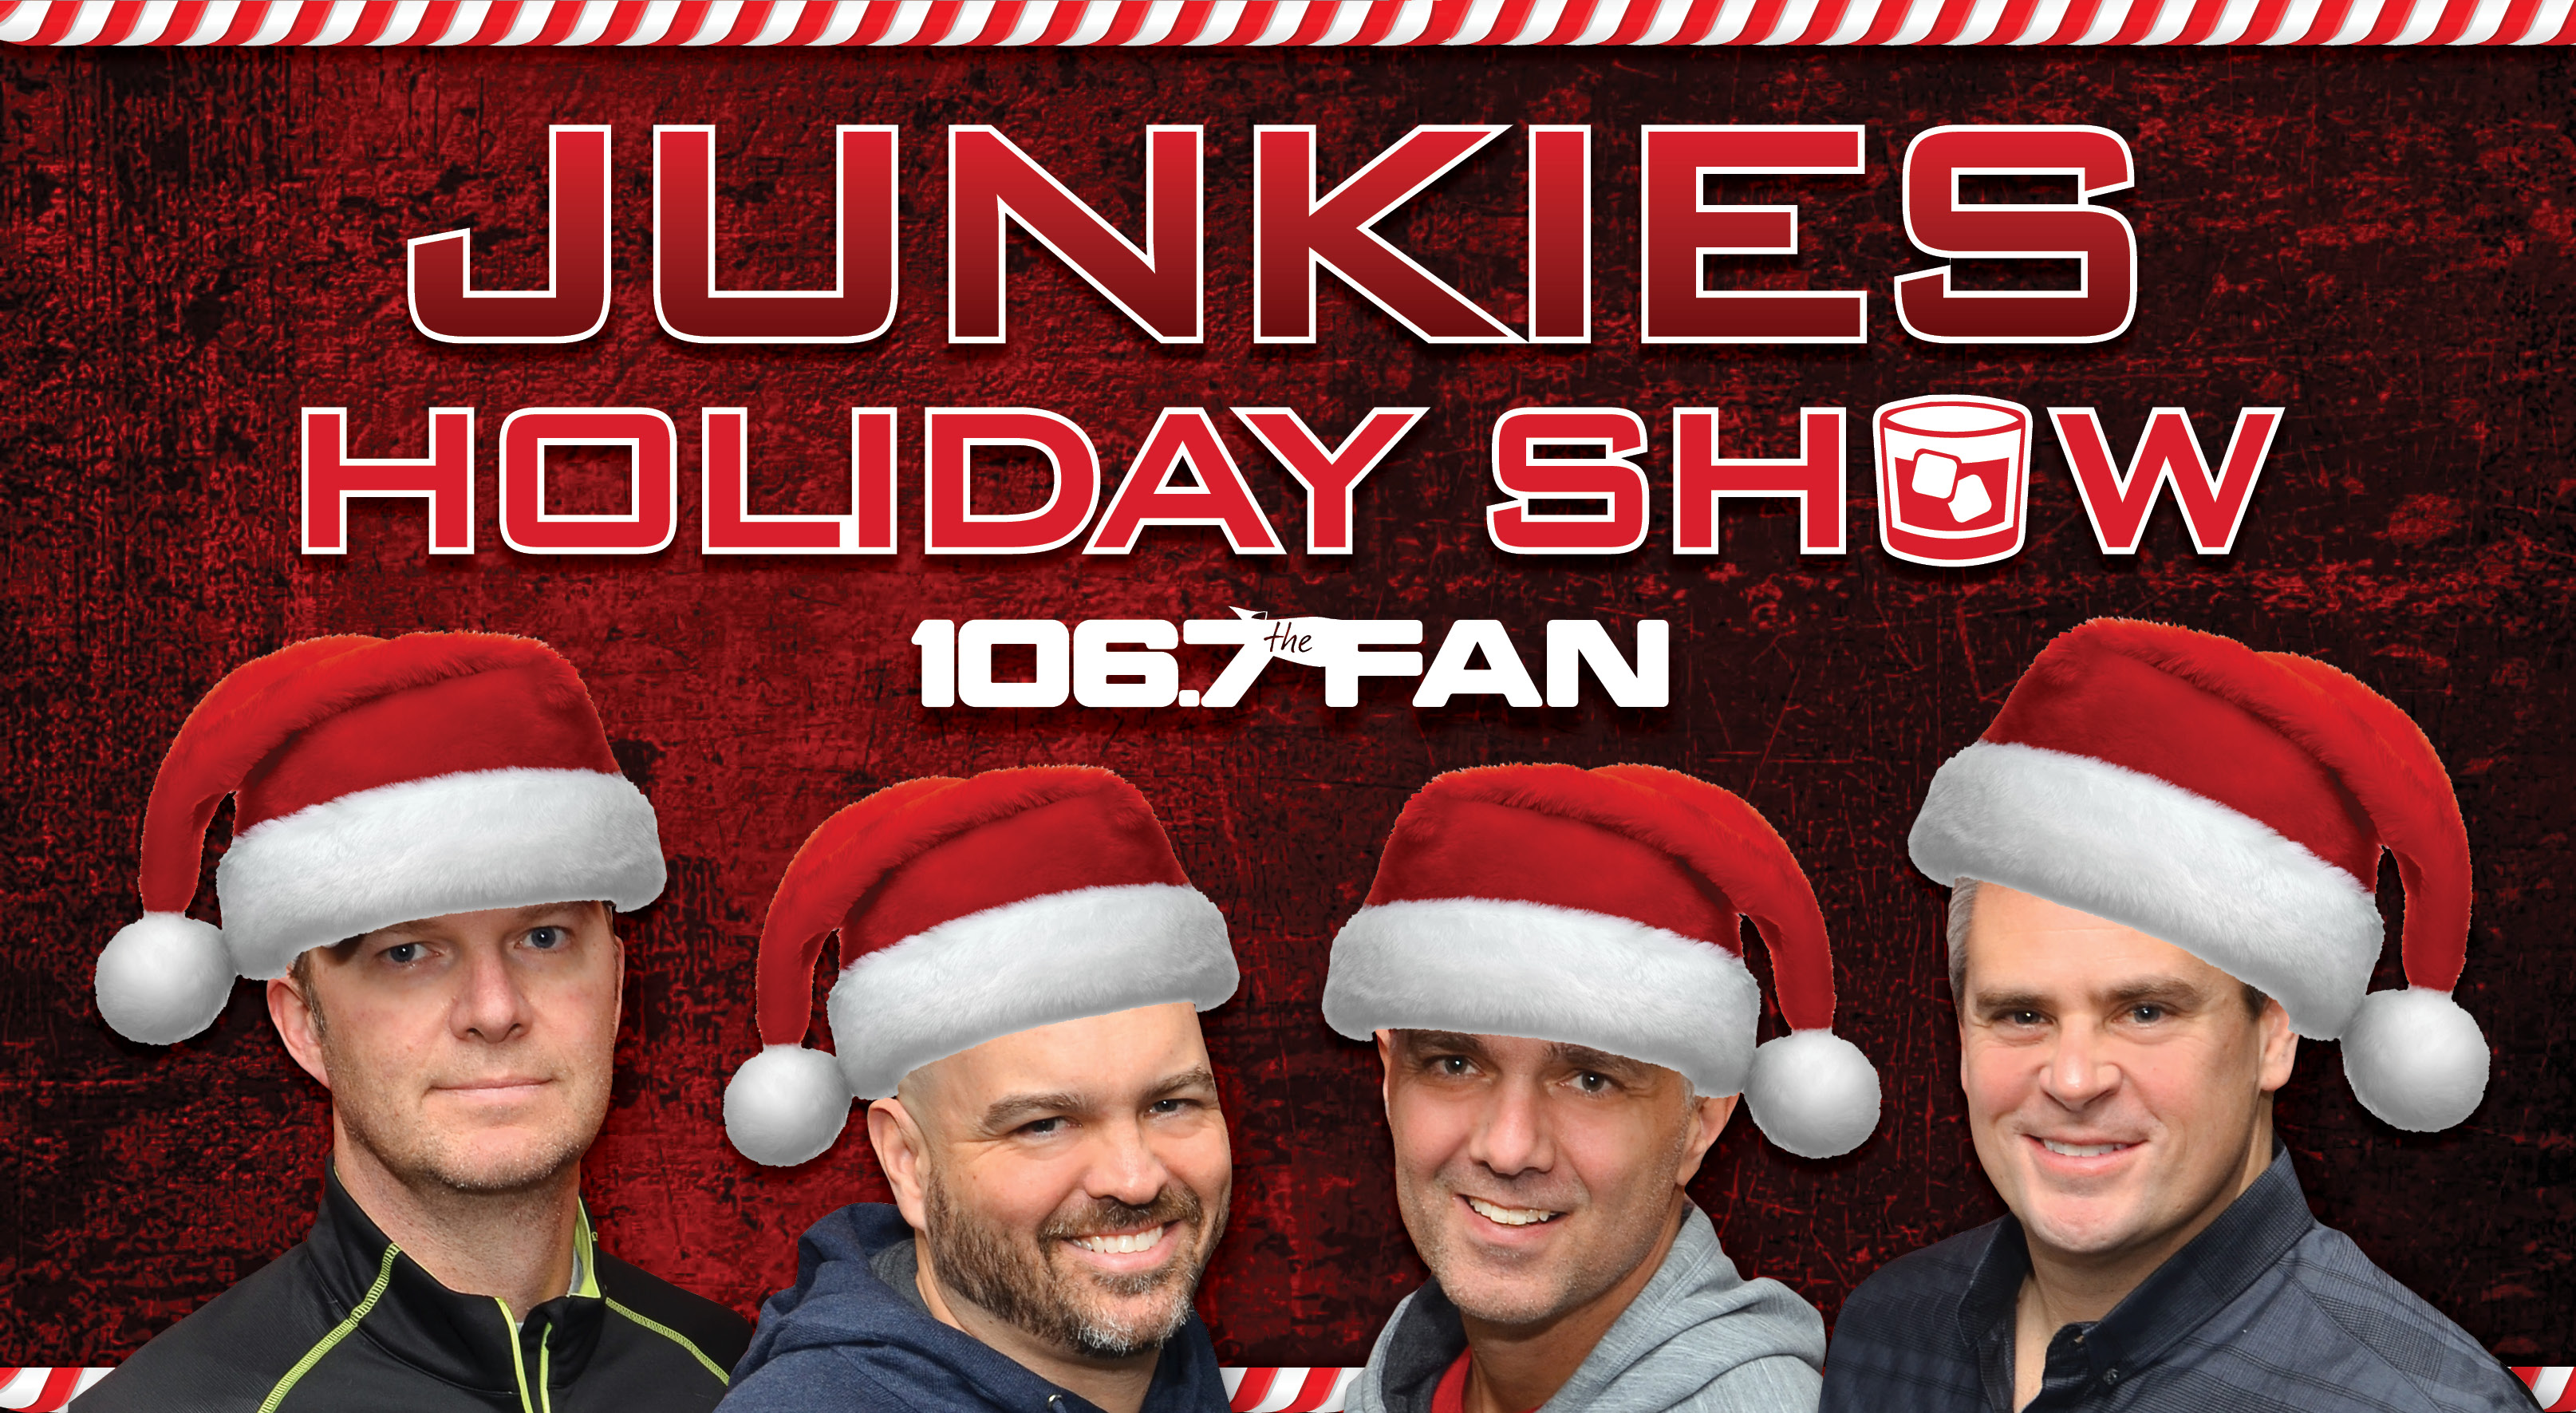 Junkies Holiday Show 2018 live blog